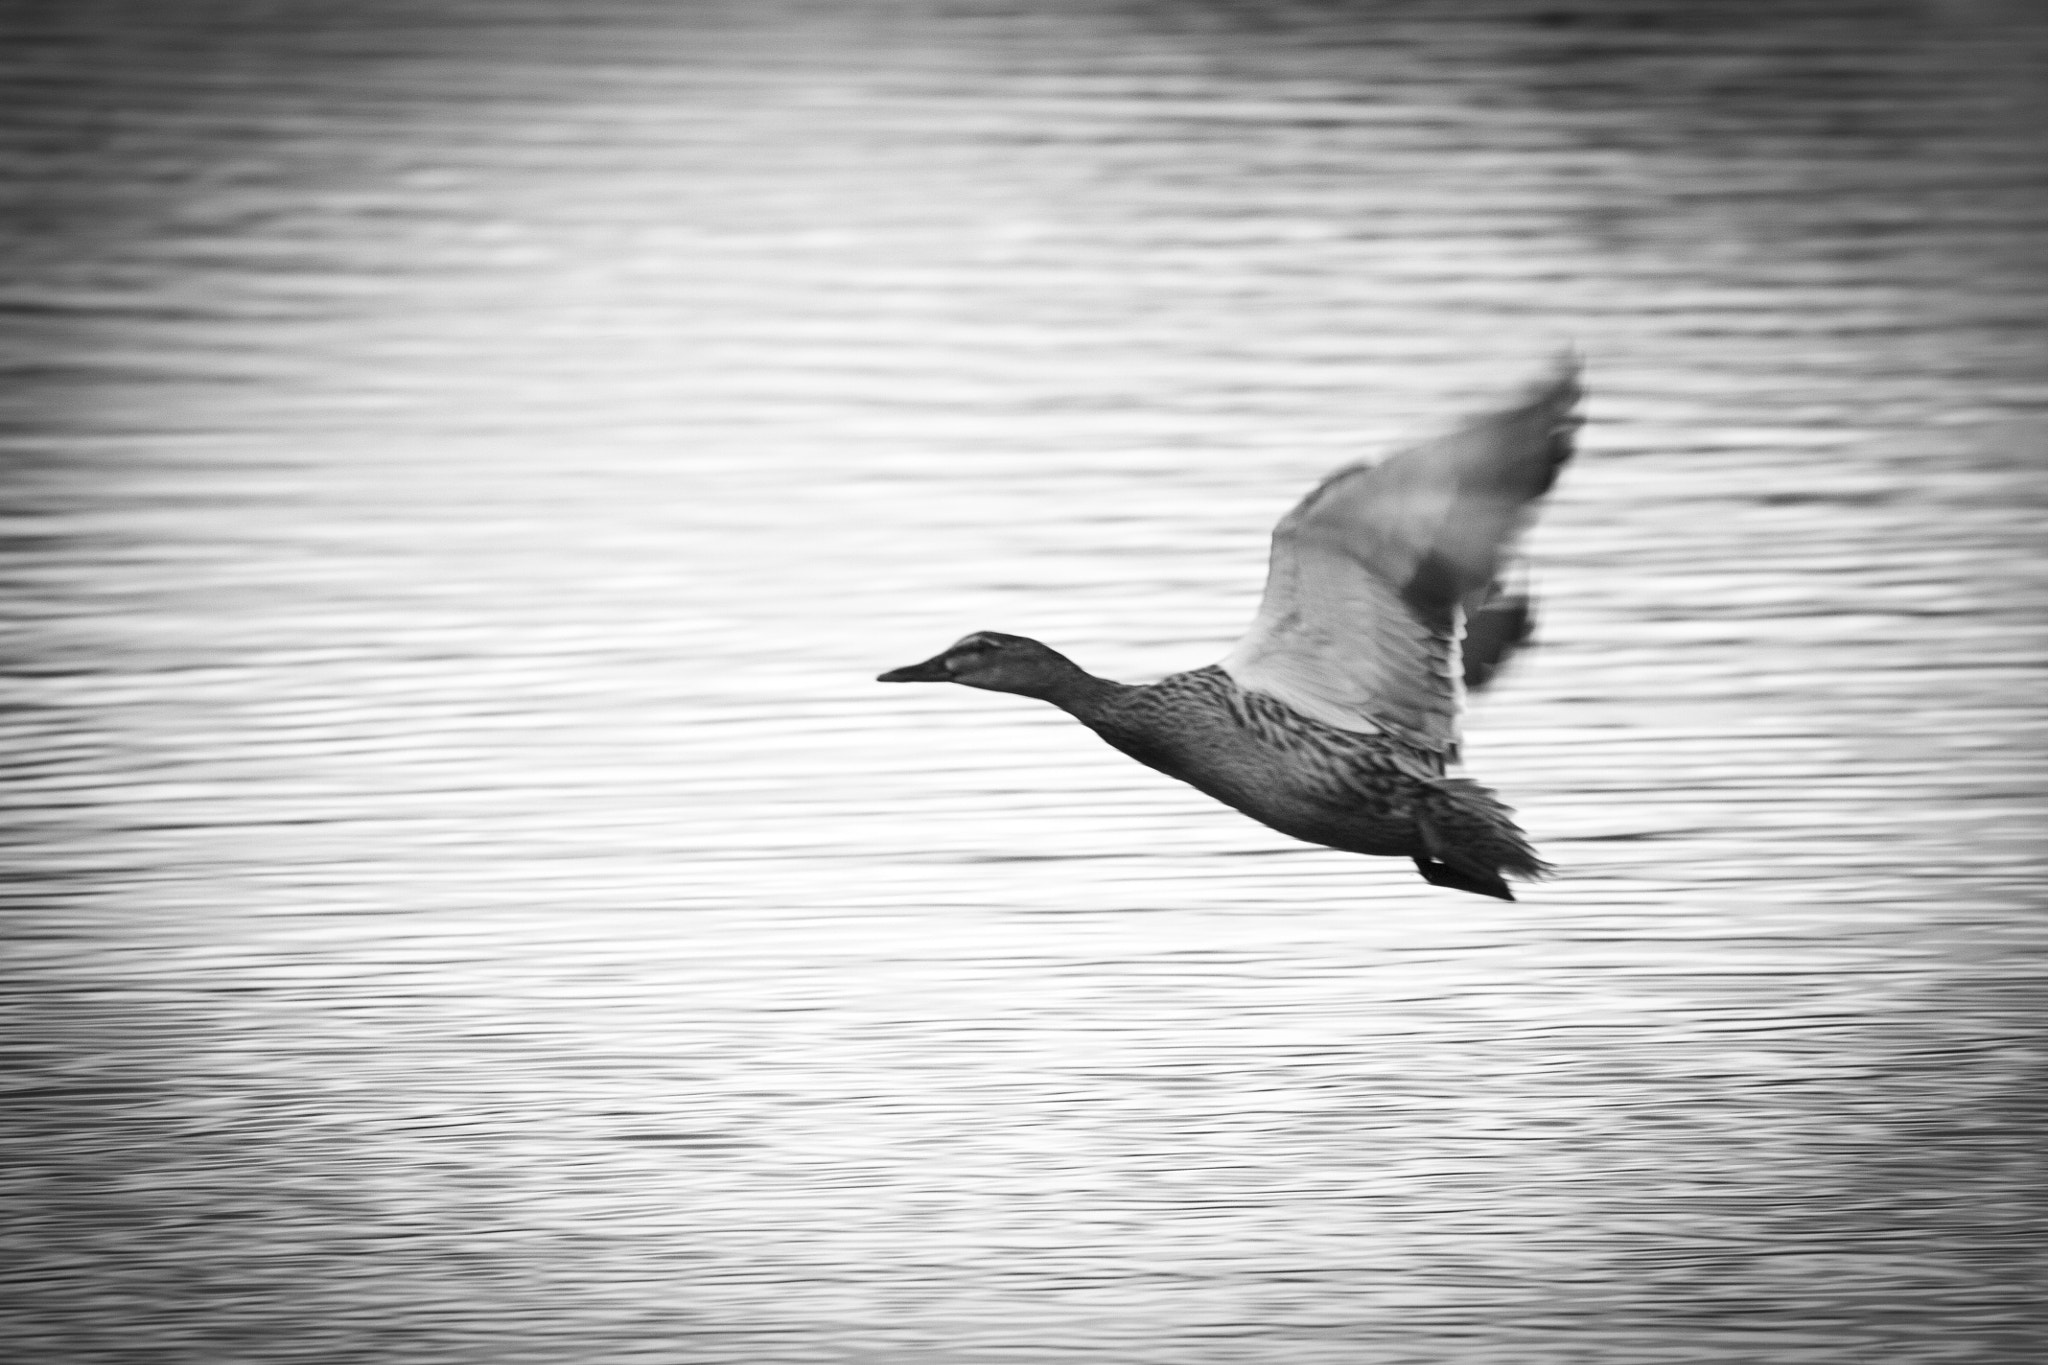 Photograph In Flight by Oisin Conolly on 500px